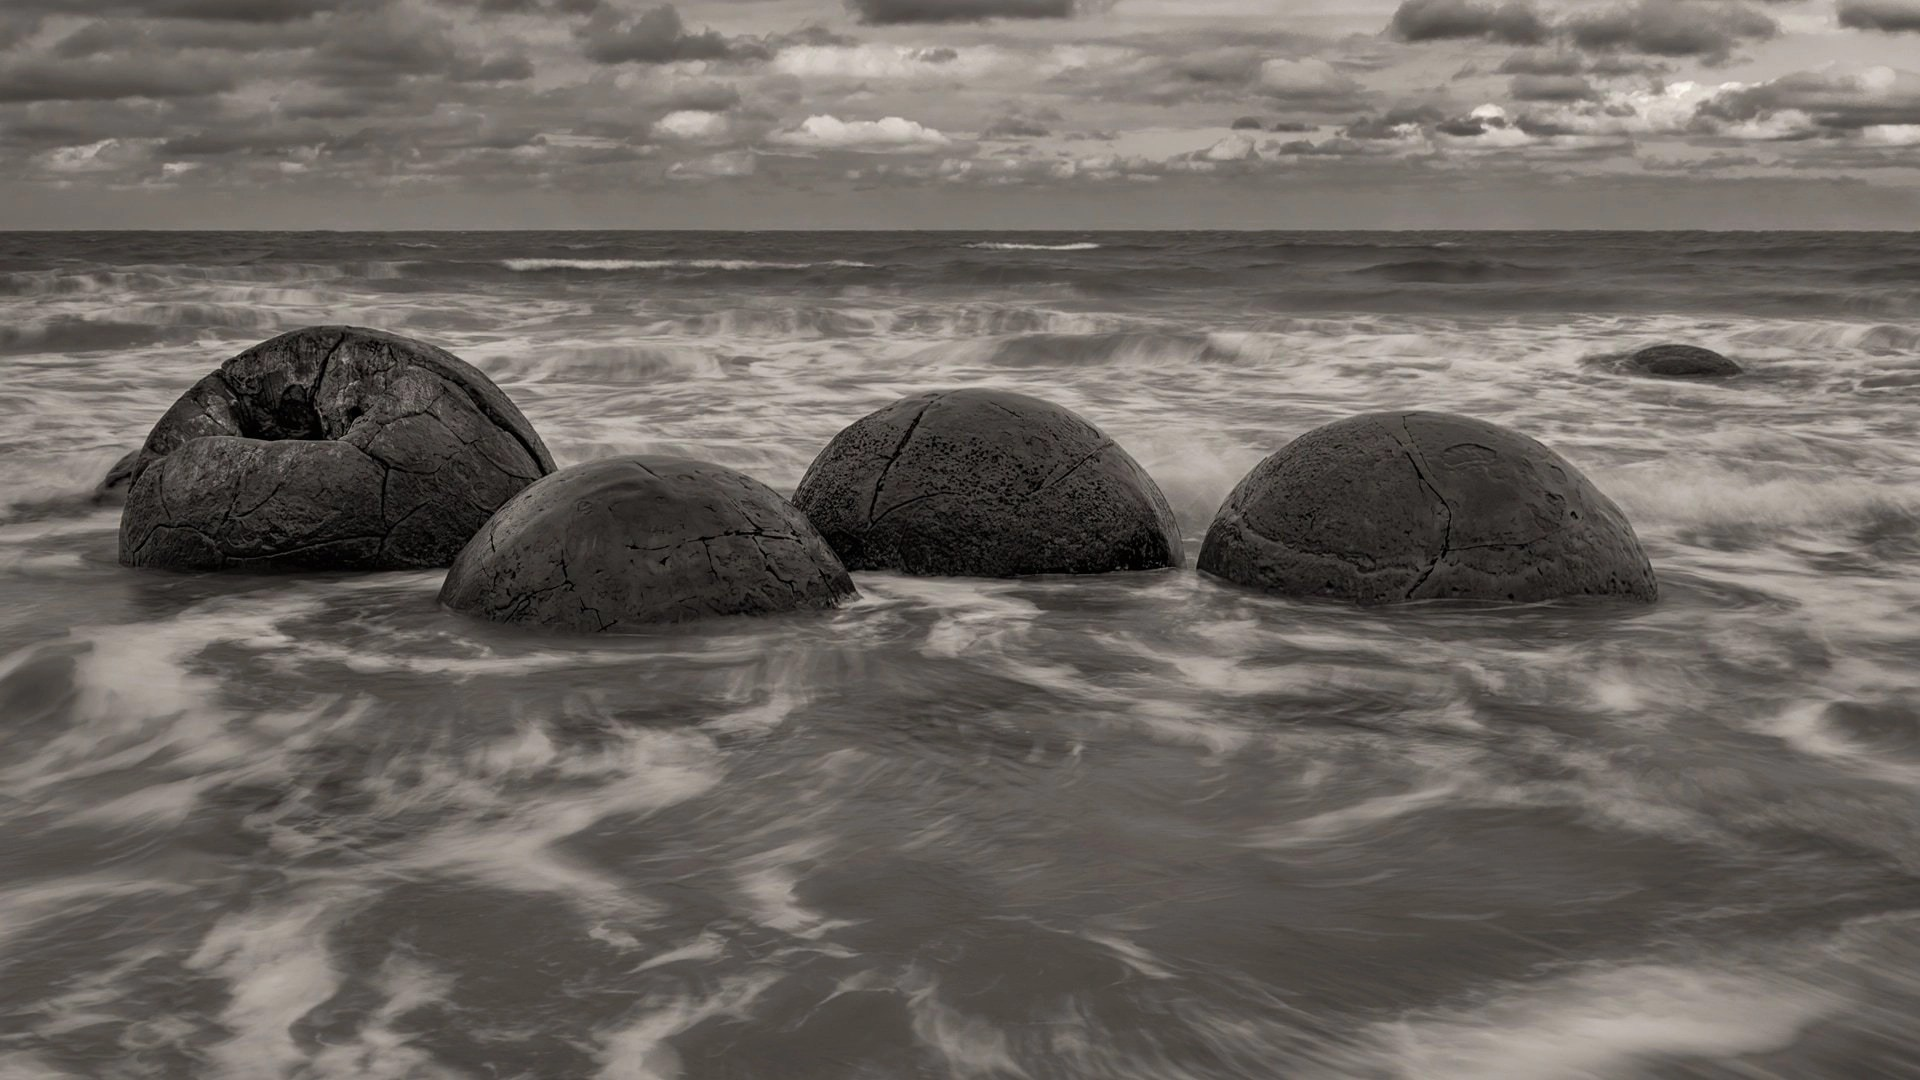 Bill Chatwell: Moeraki Boulders located on the East Coast of New Zealand, March 2018.